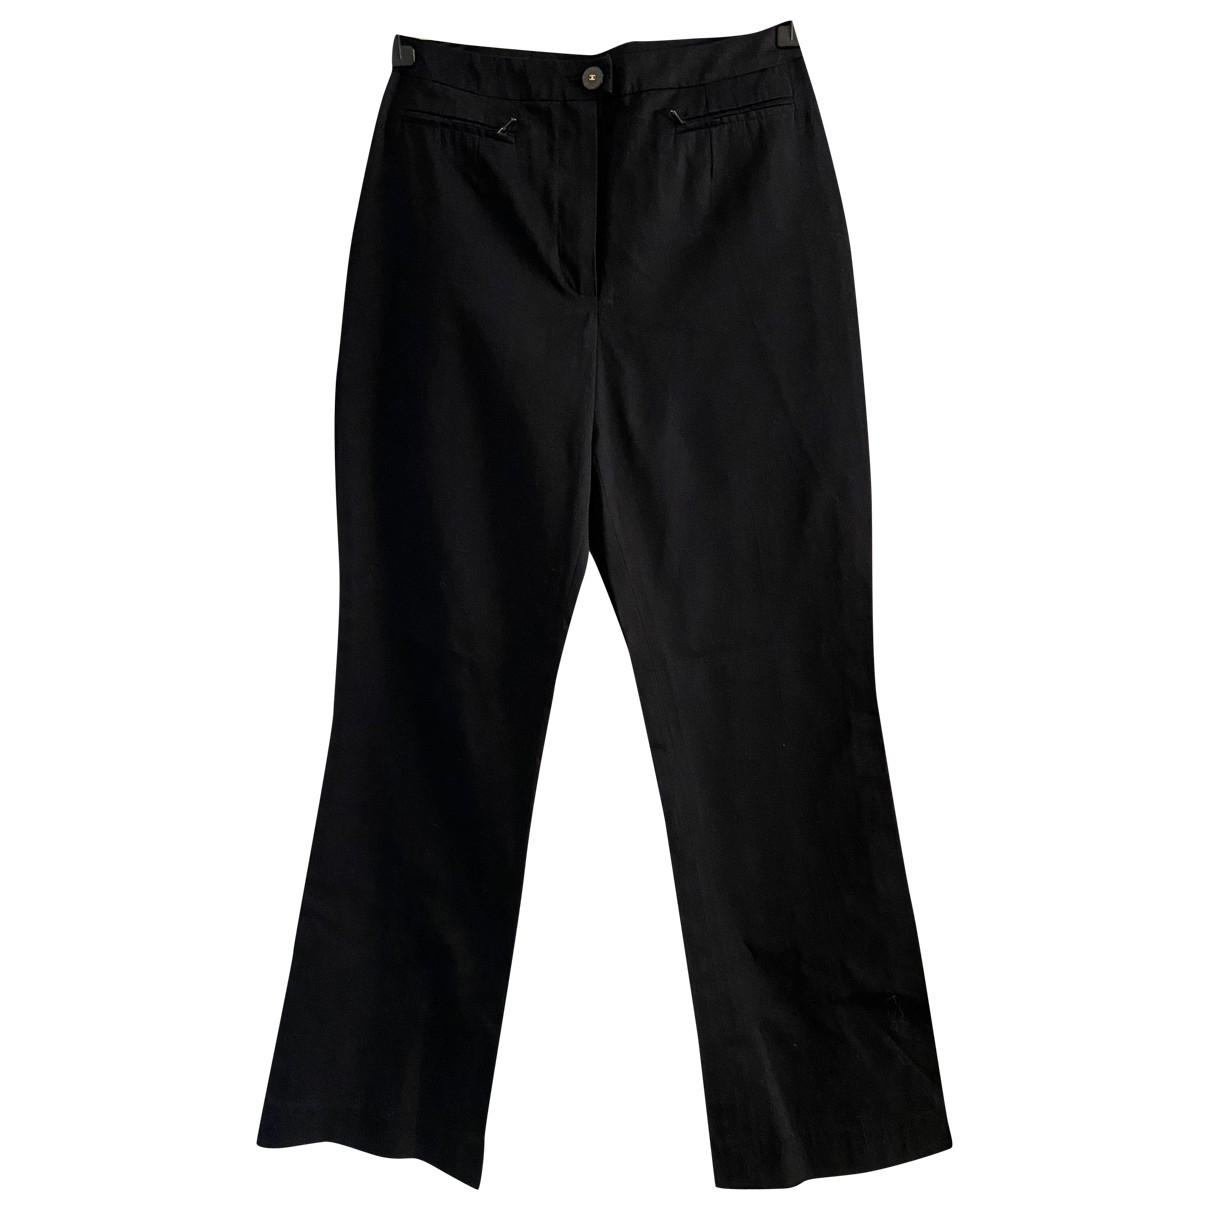 Chanel \N Black Cotton Trousers for Women 38 FR